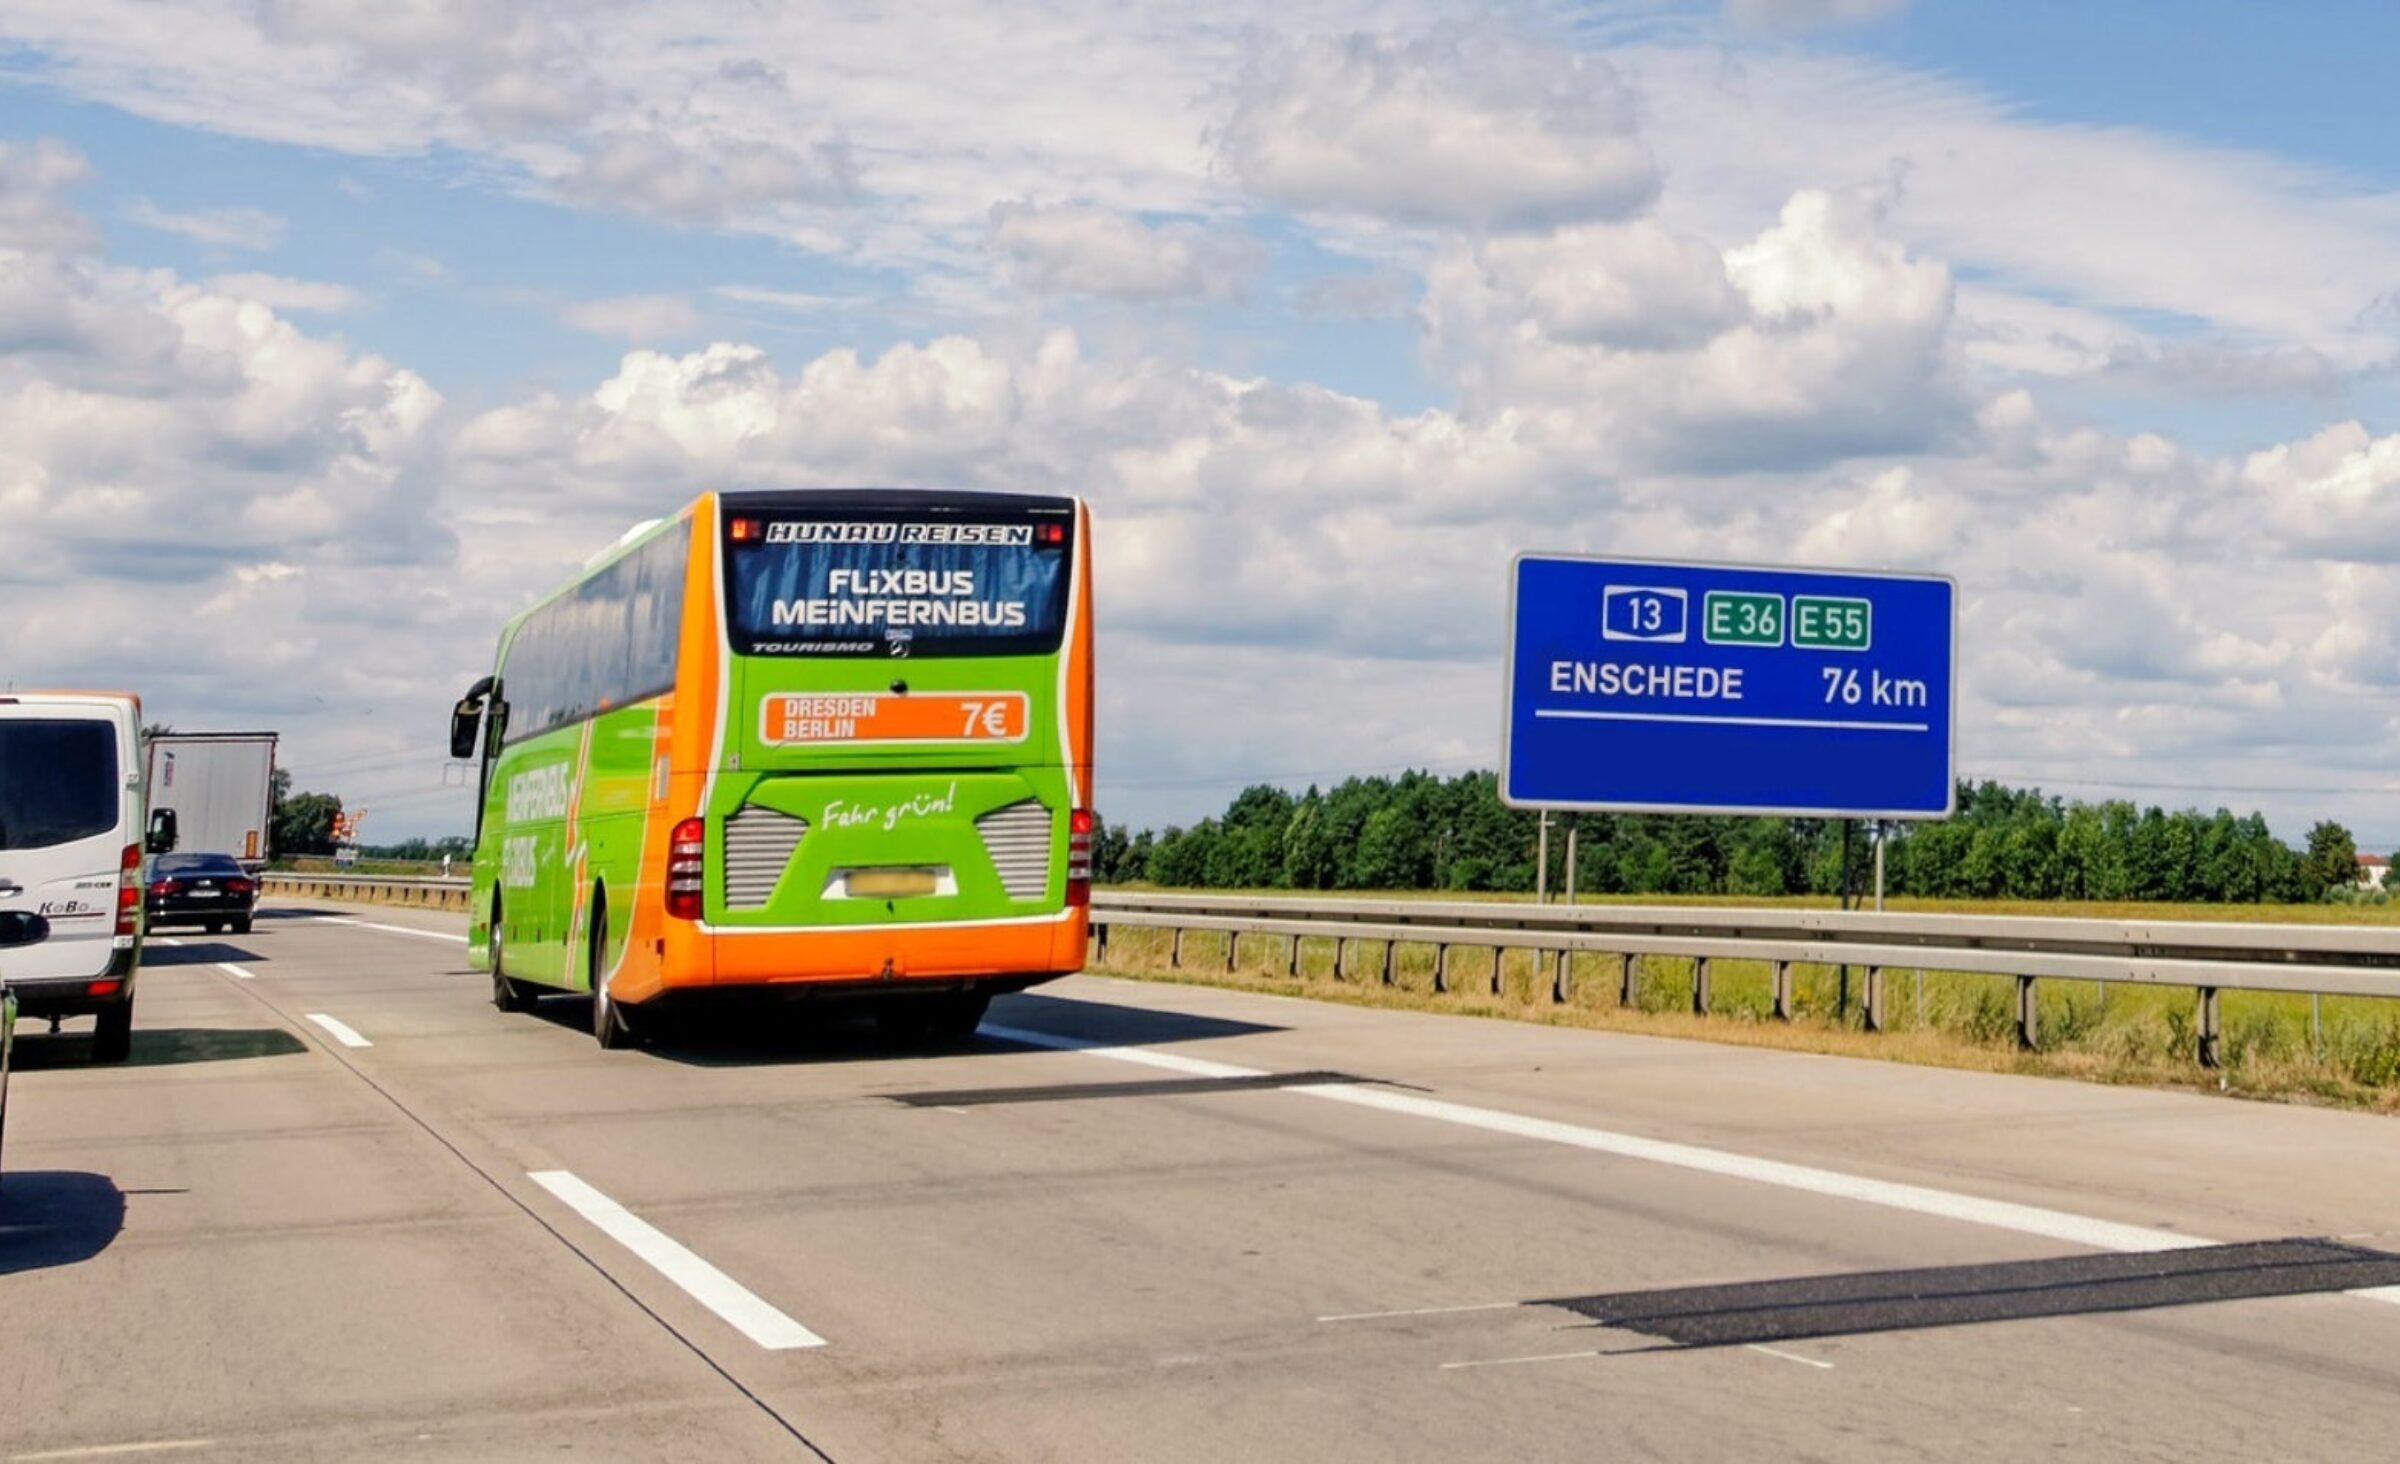 Traveling From Amsterdam to Enschede